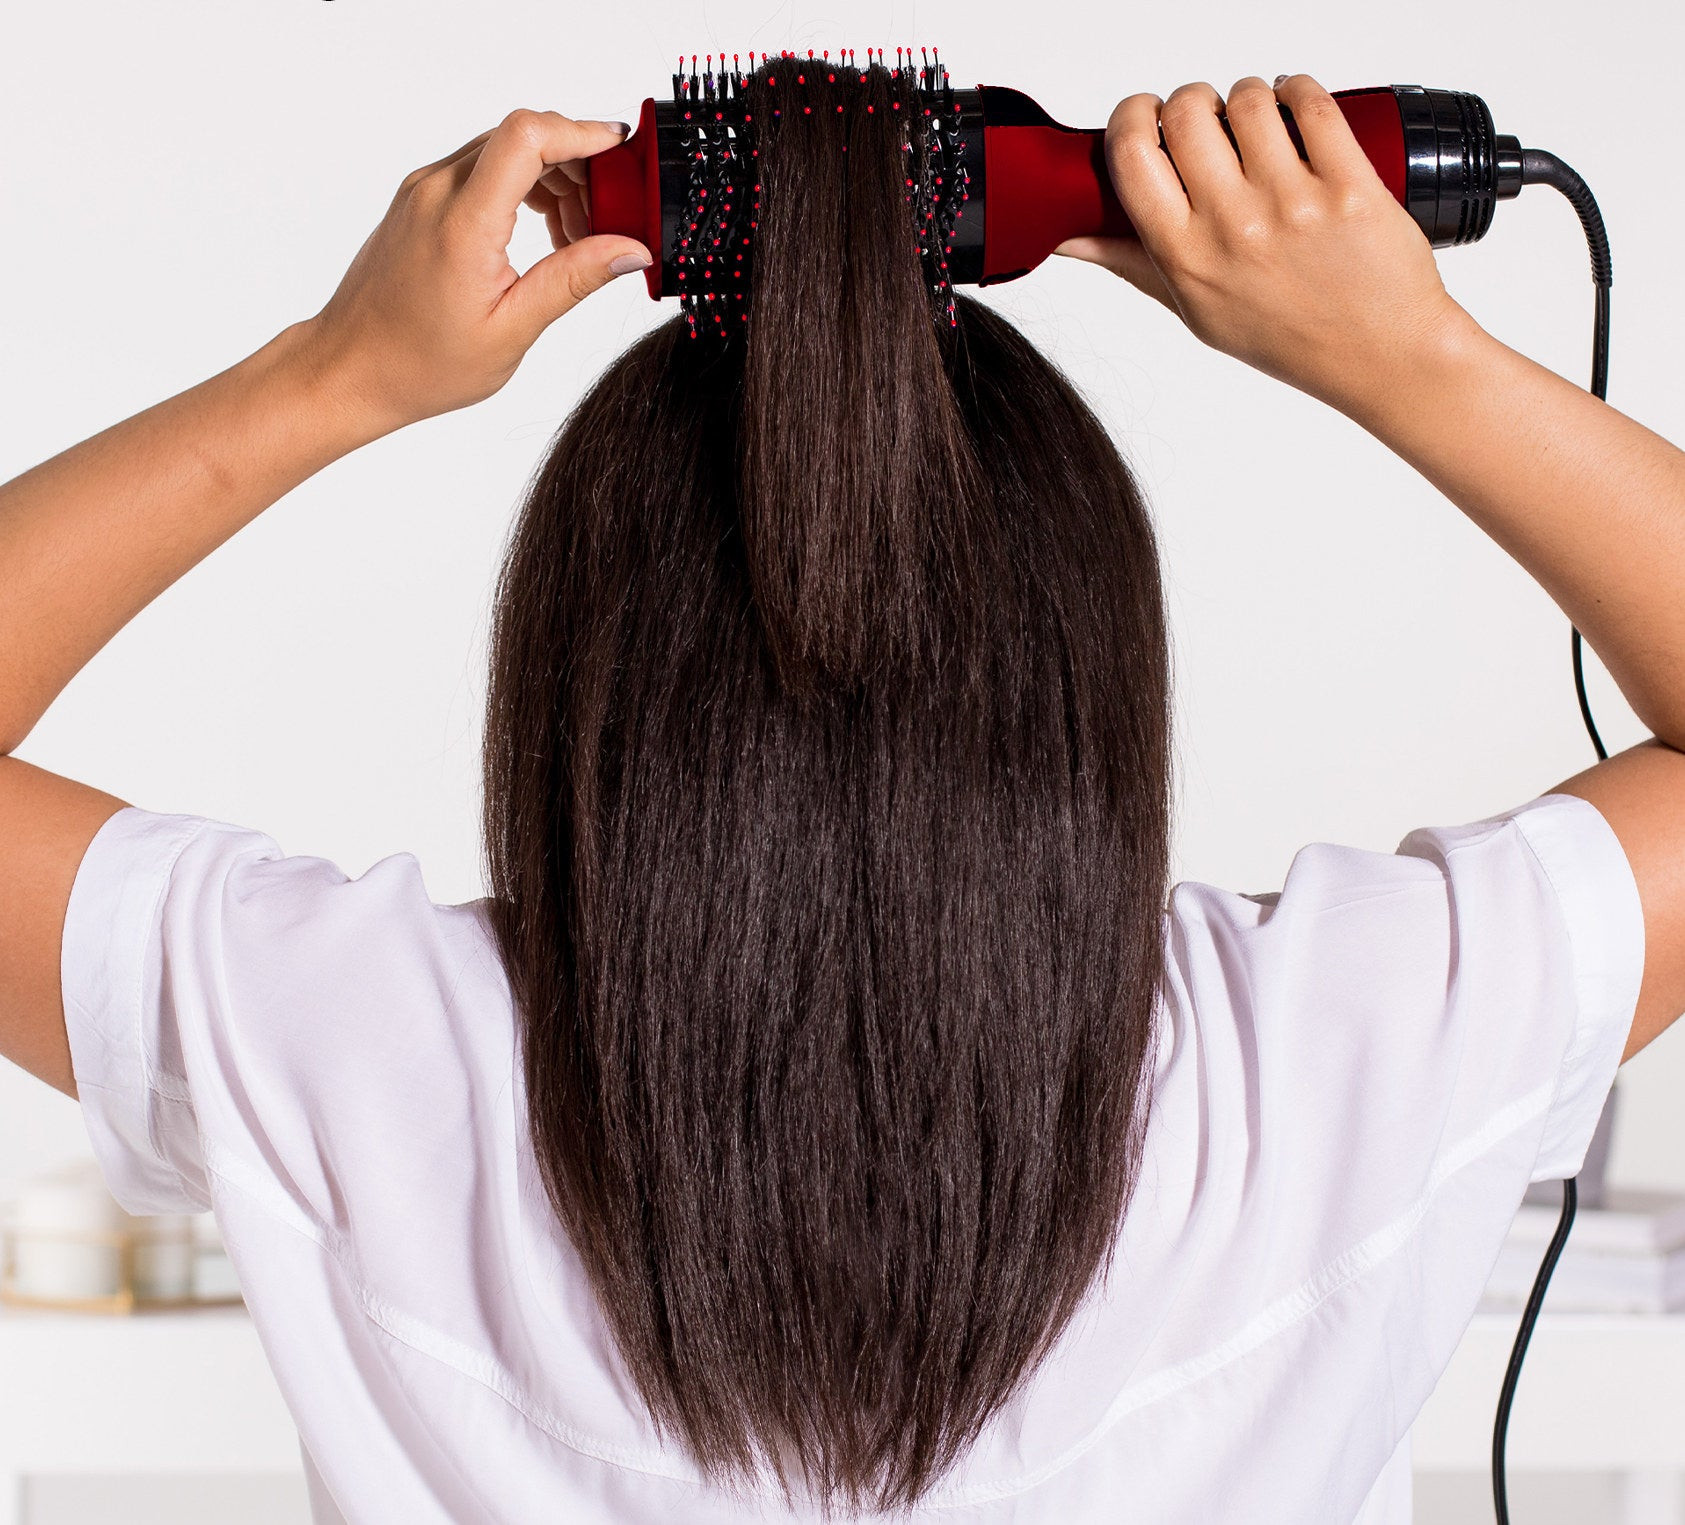 Model straightening her hair with the brush